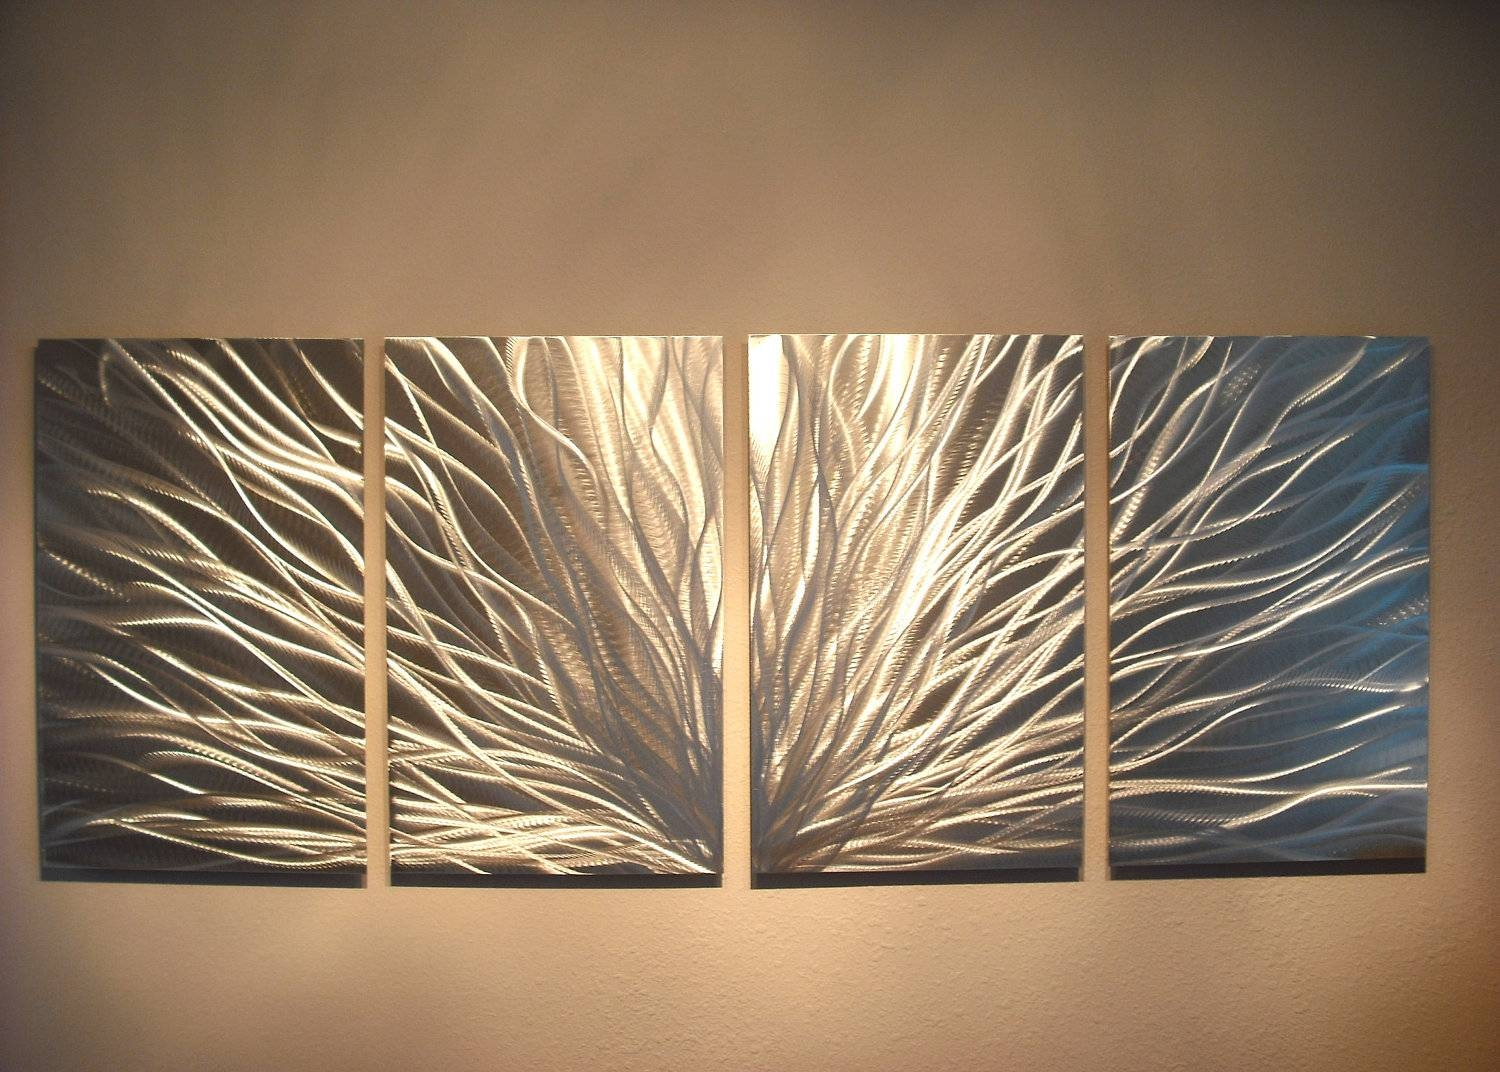 Radiance – Abstract Metal Wall Art Contemporary Modern Decor Throughout Best And Newest Large Metal Wall Art Sculptures (View 15 of 20)